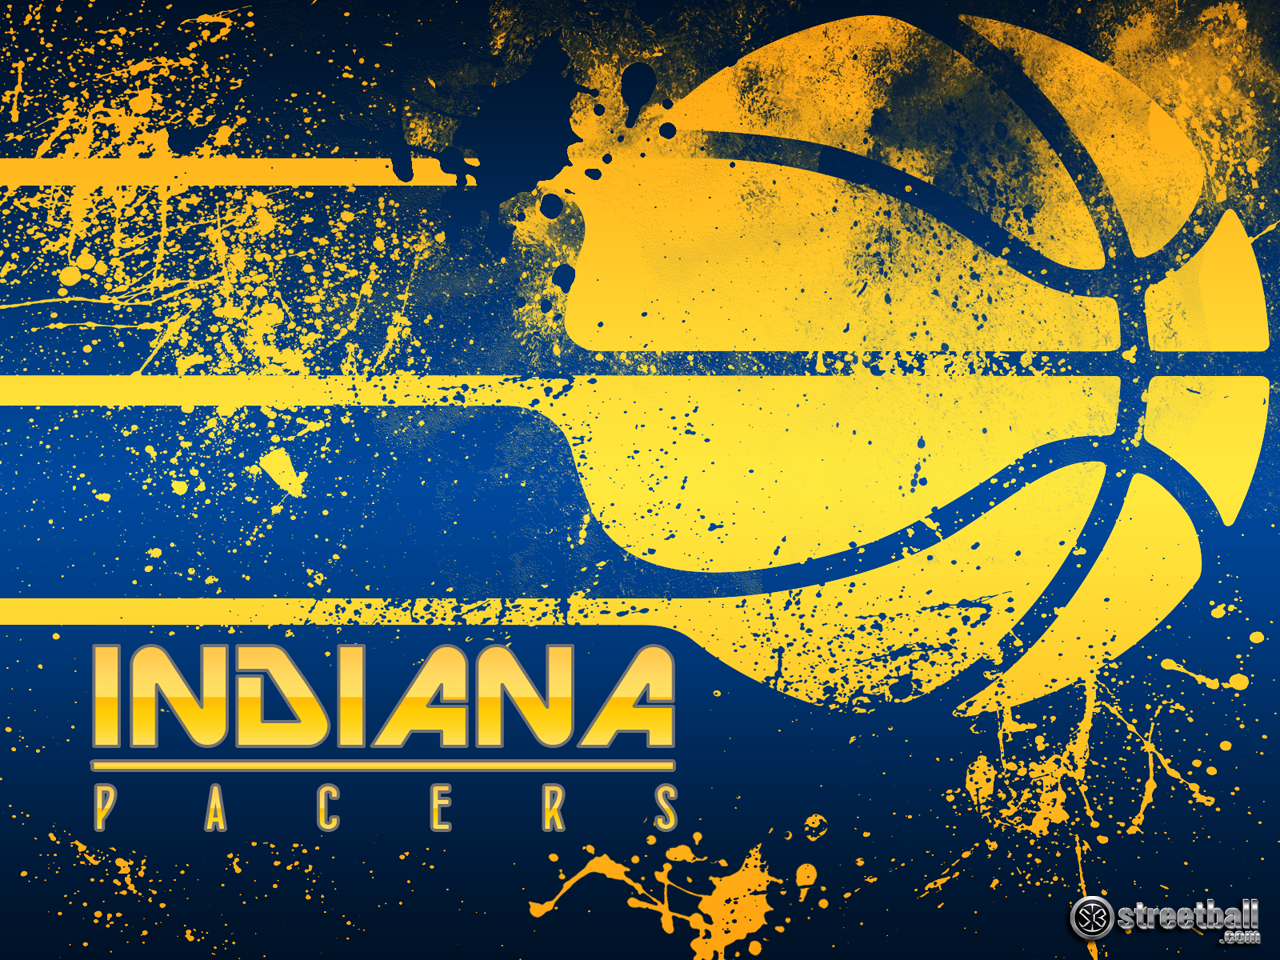 Indiana Pacers | NBAsports Wiki | FANDOM powered by Wikia